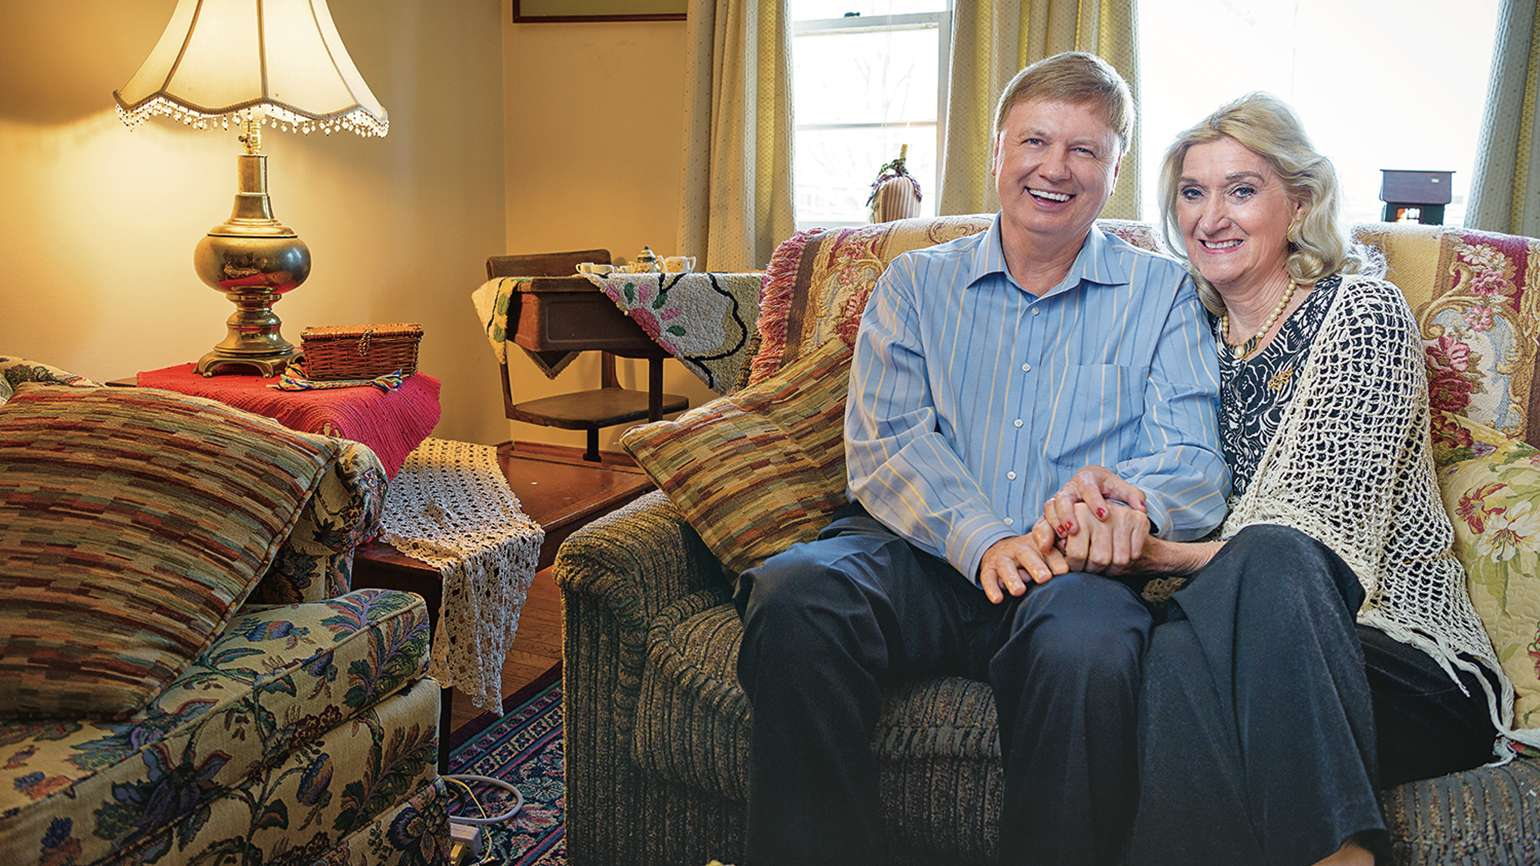 John and his wife, Trish, are closer than ever today